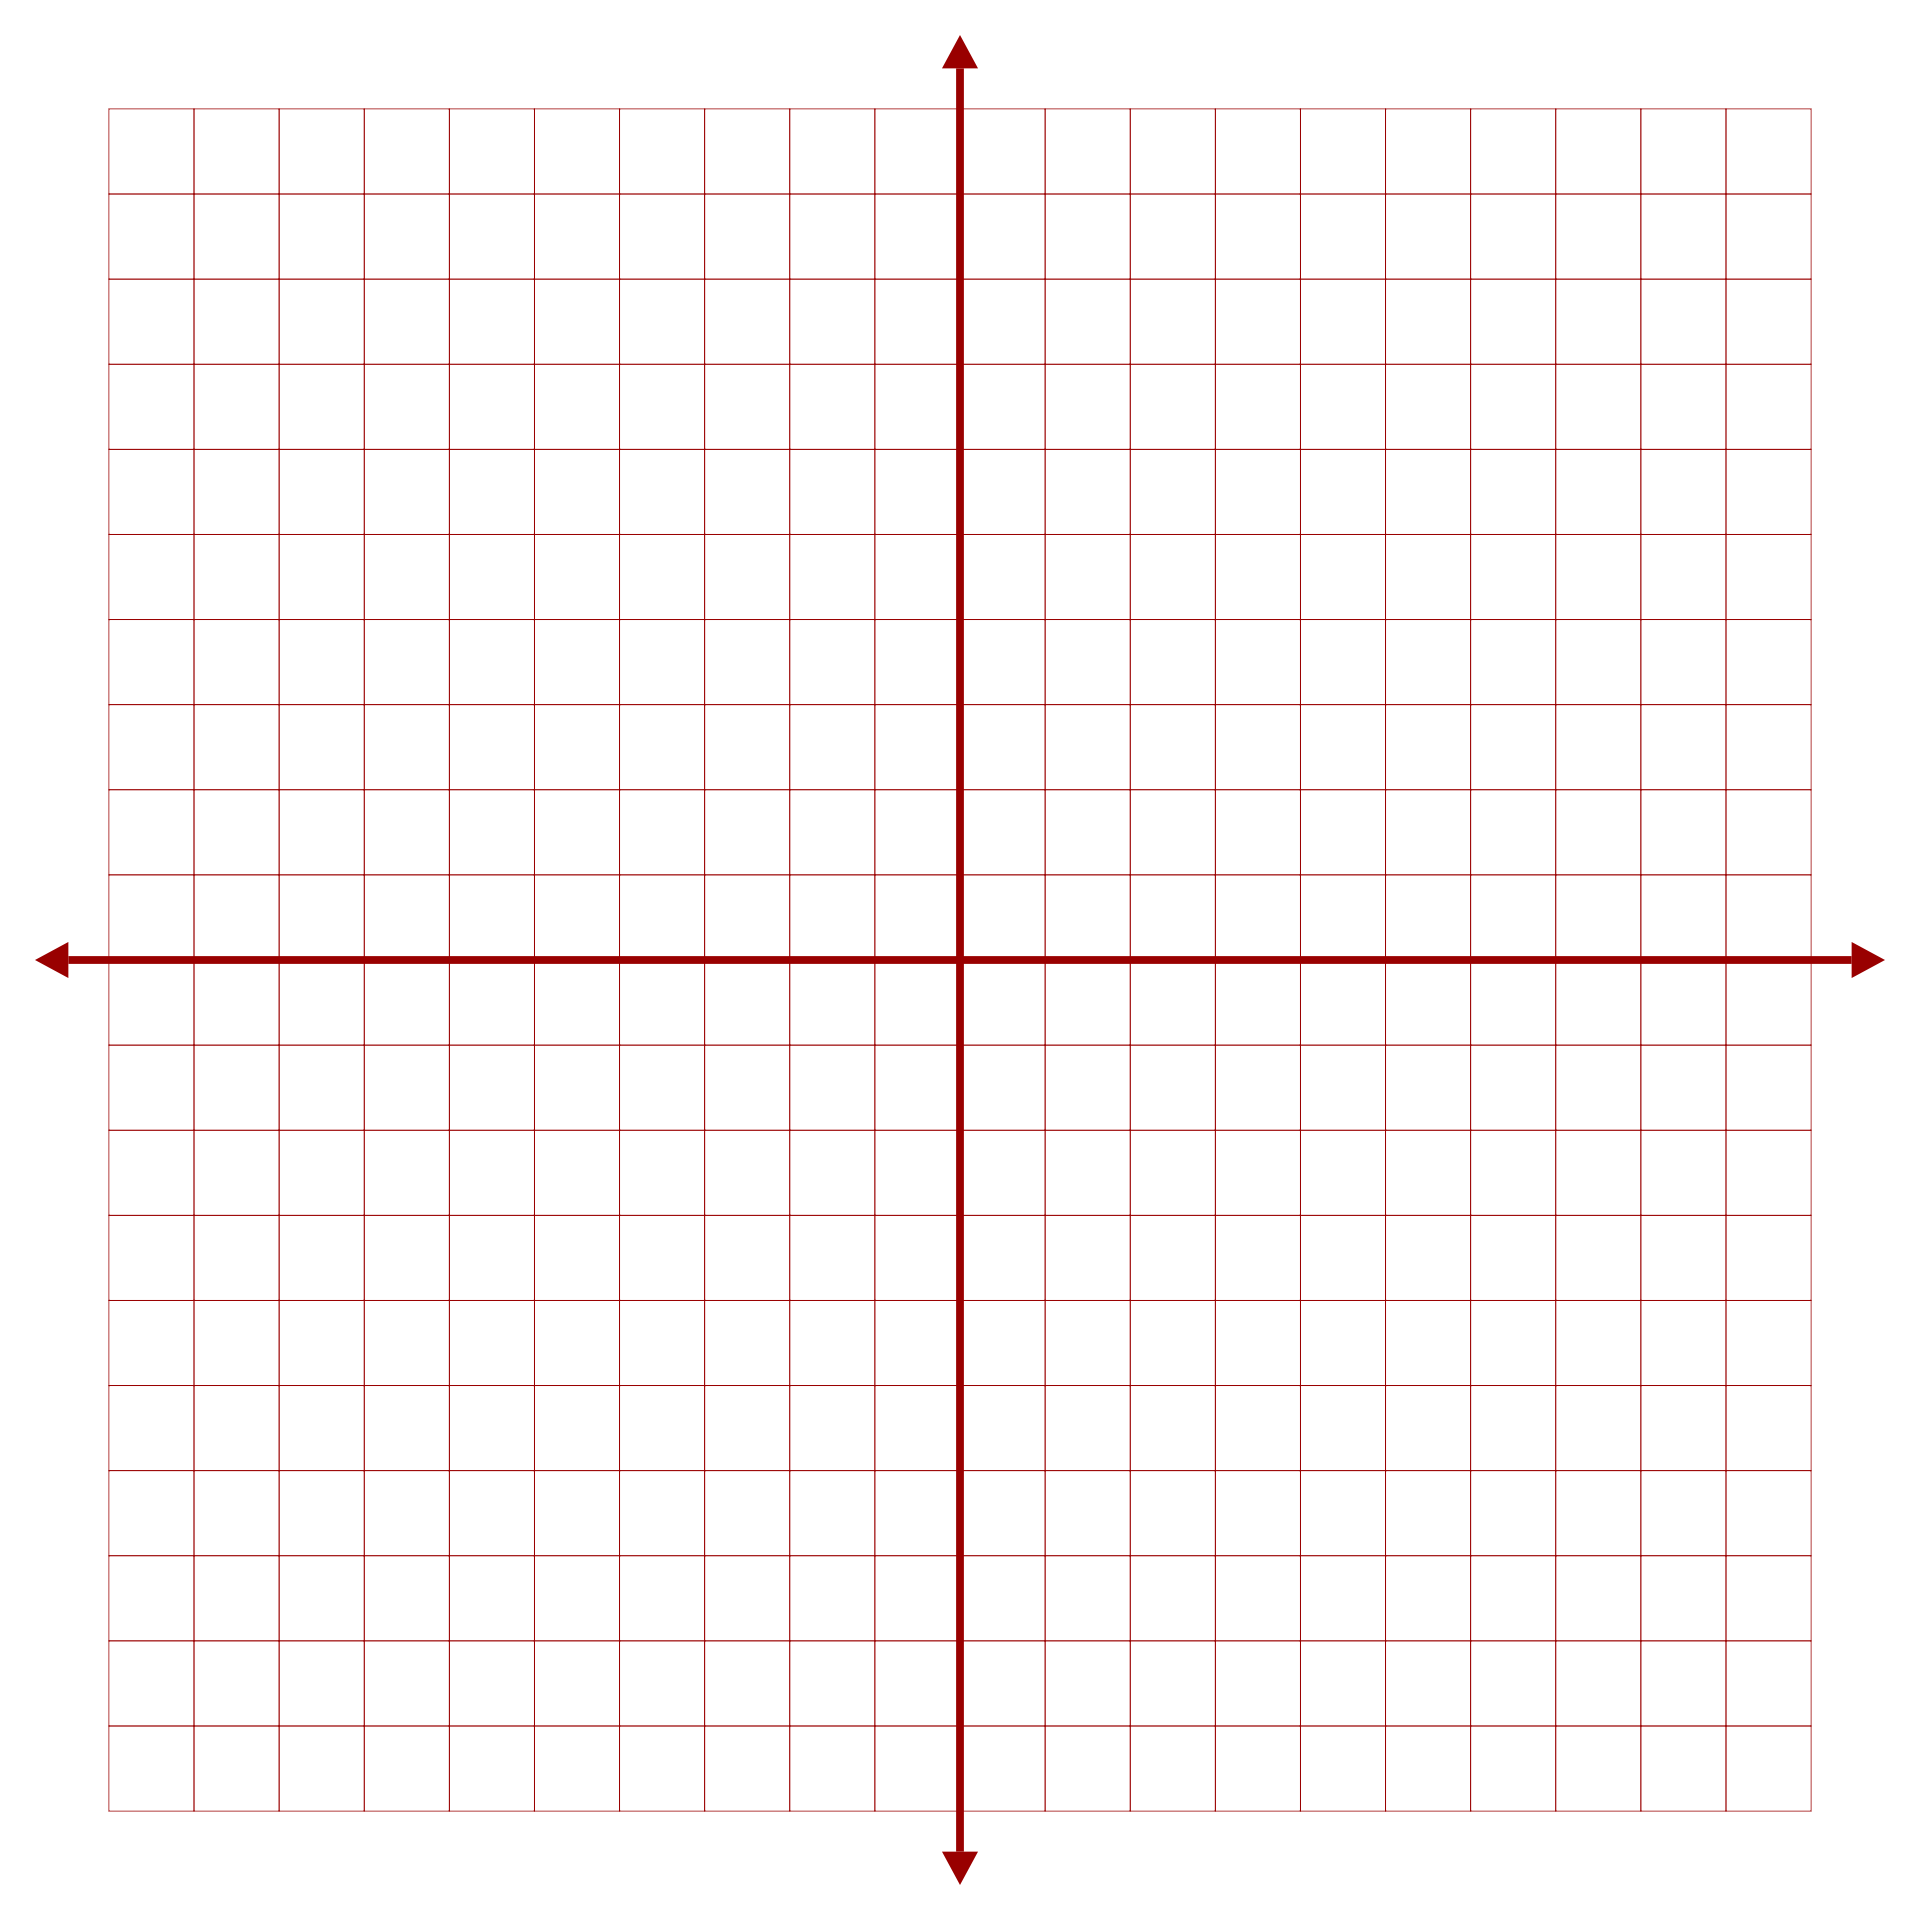 worksheet Coordinate Plane Worksheet collection of blank coordinate plane worksheets sharebrowse similiar printable picture graphs keywords